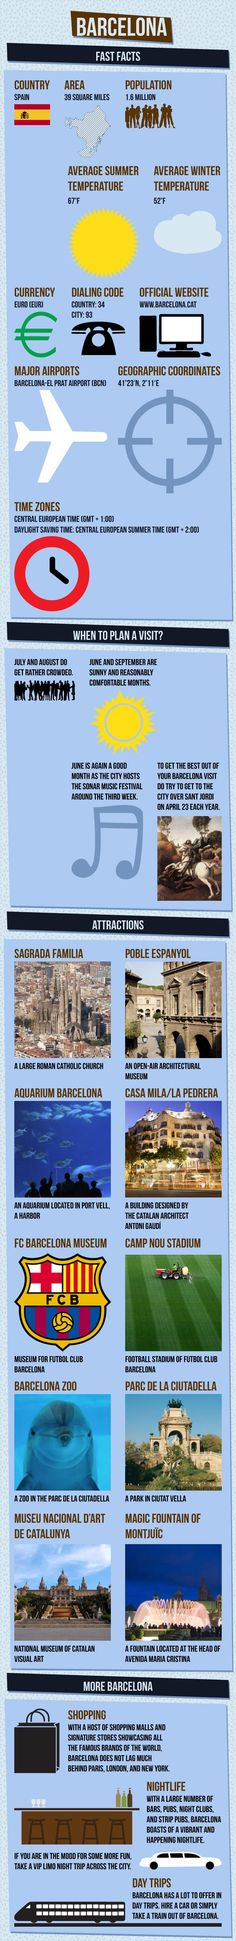 The Barcelona travel infographic shows details about the city of Barcelona. Get information like fast facts, when to visit, weather, places to visit, hotels, restaurants, things to do, transportation and much more about Barcelona via infographics.